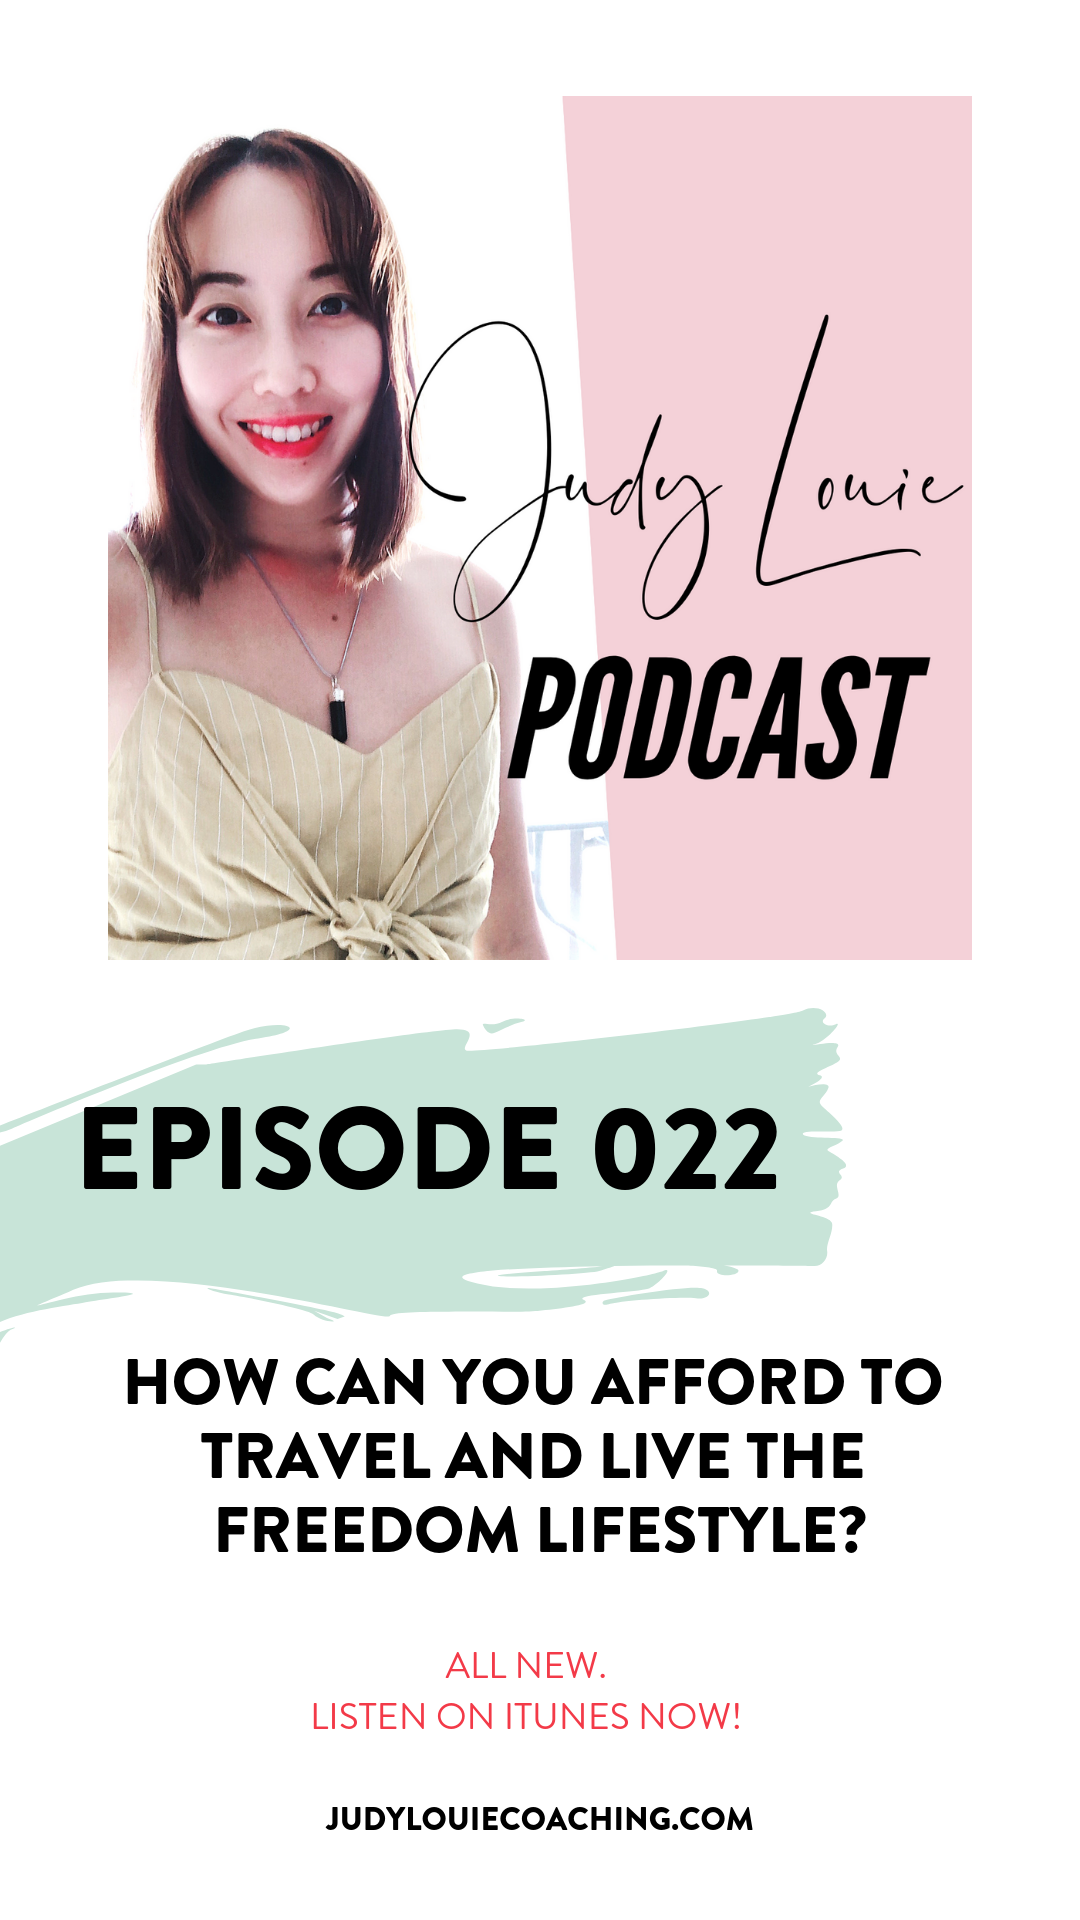 judy louie podcast - freedom lifestyle - ep022.png